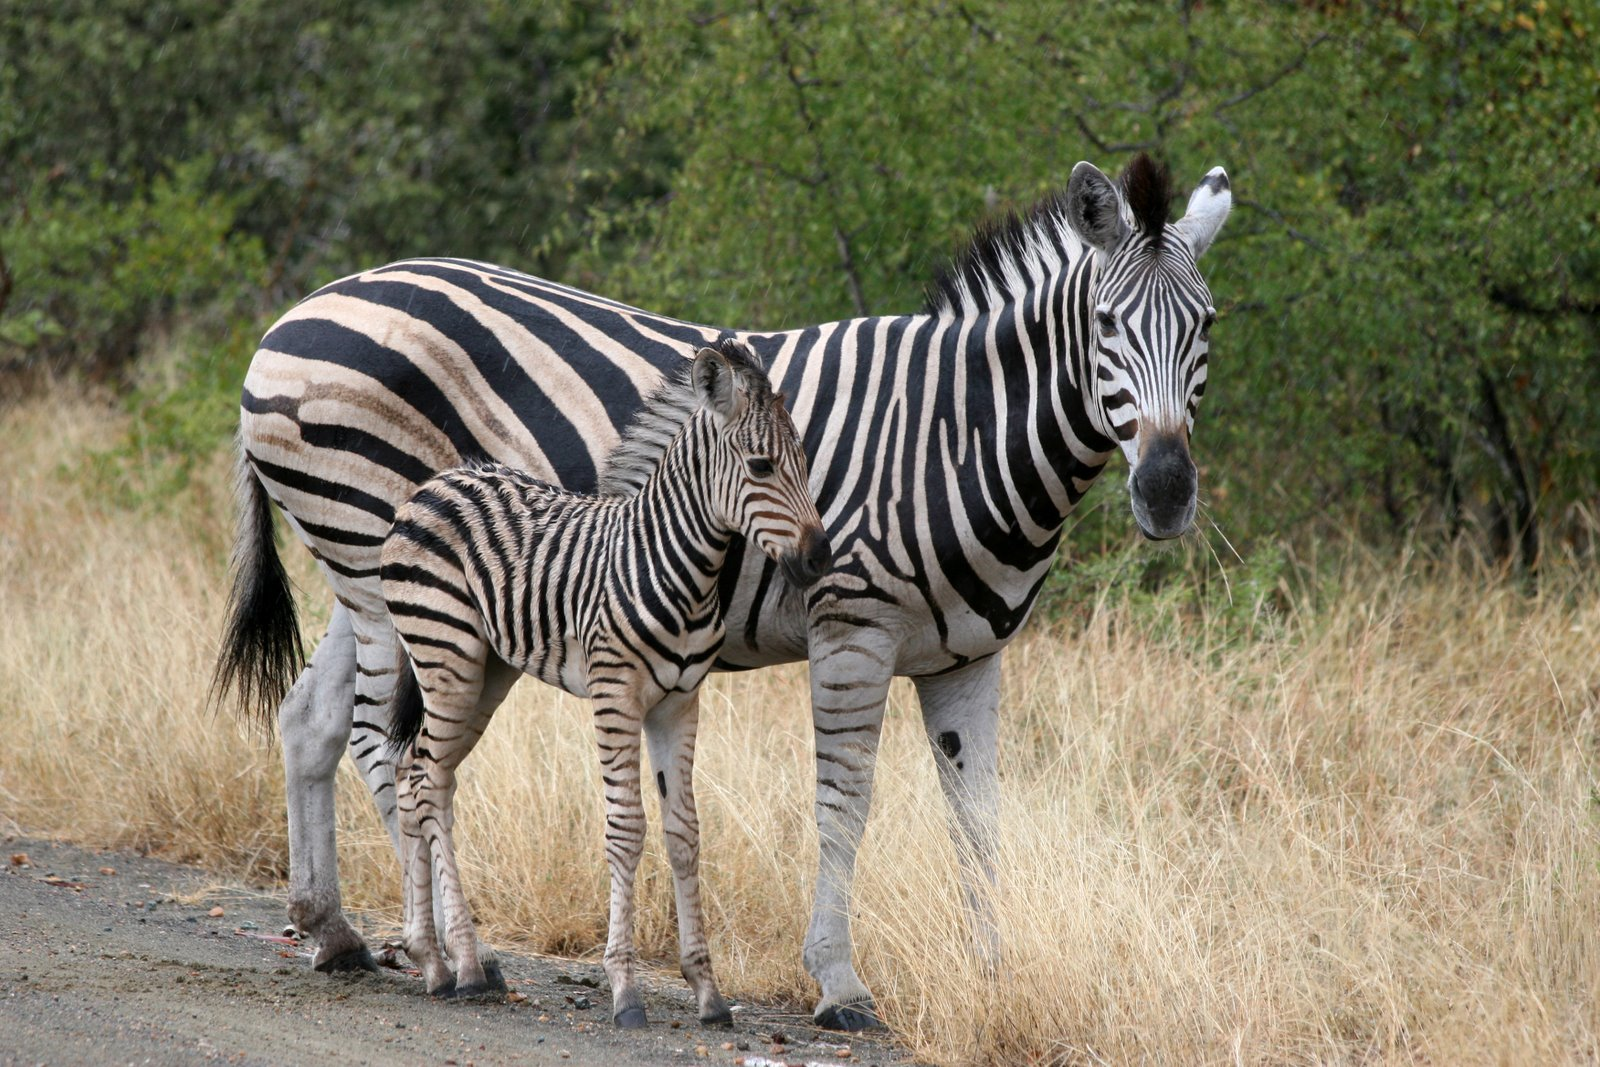 S4 Wallpaper Hd Funny African Animals 9 Hd Wallpaper Funnypicture Org